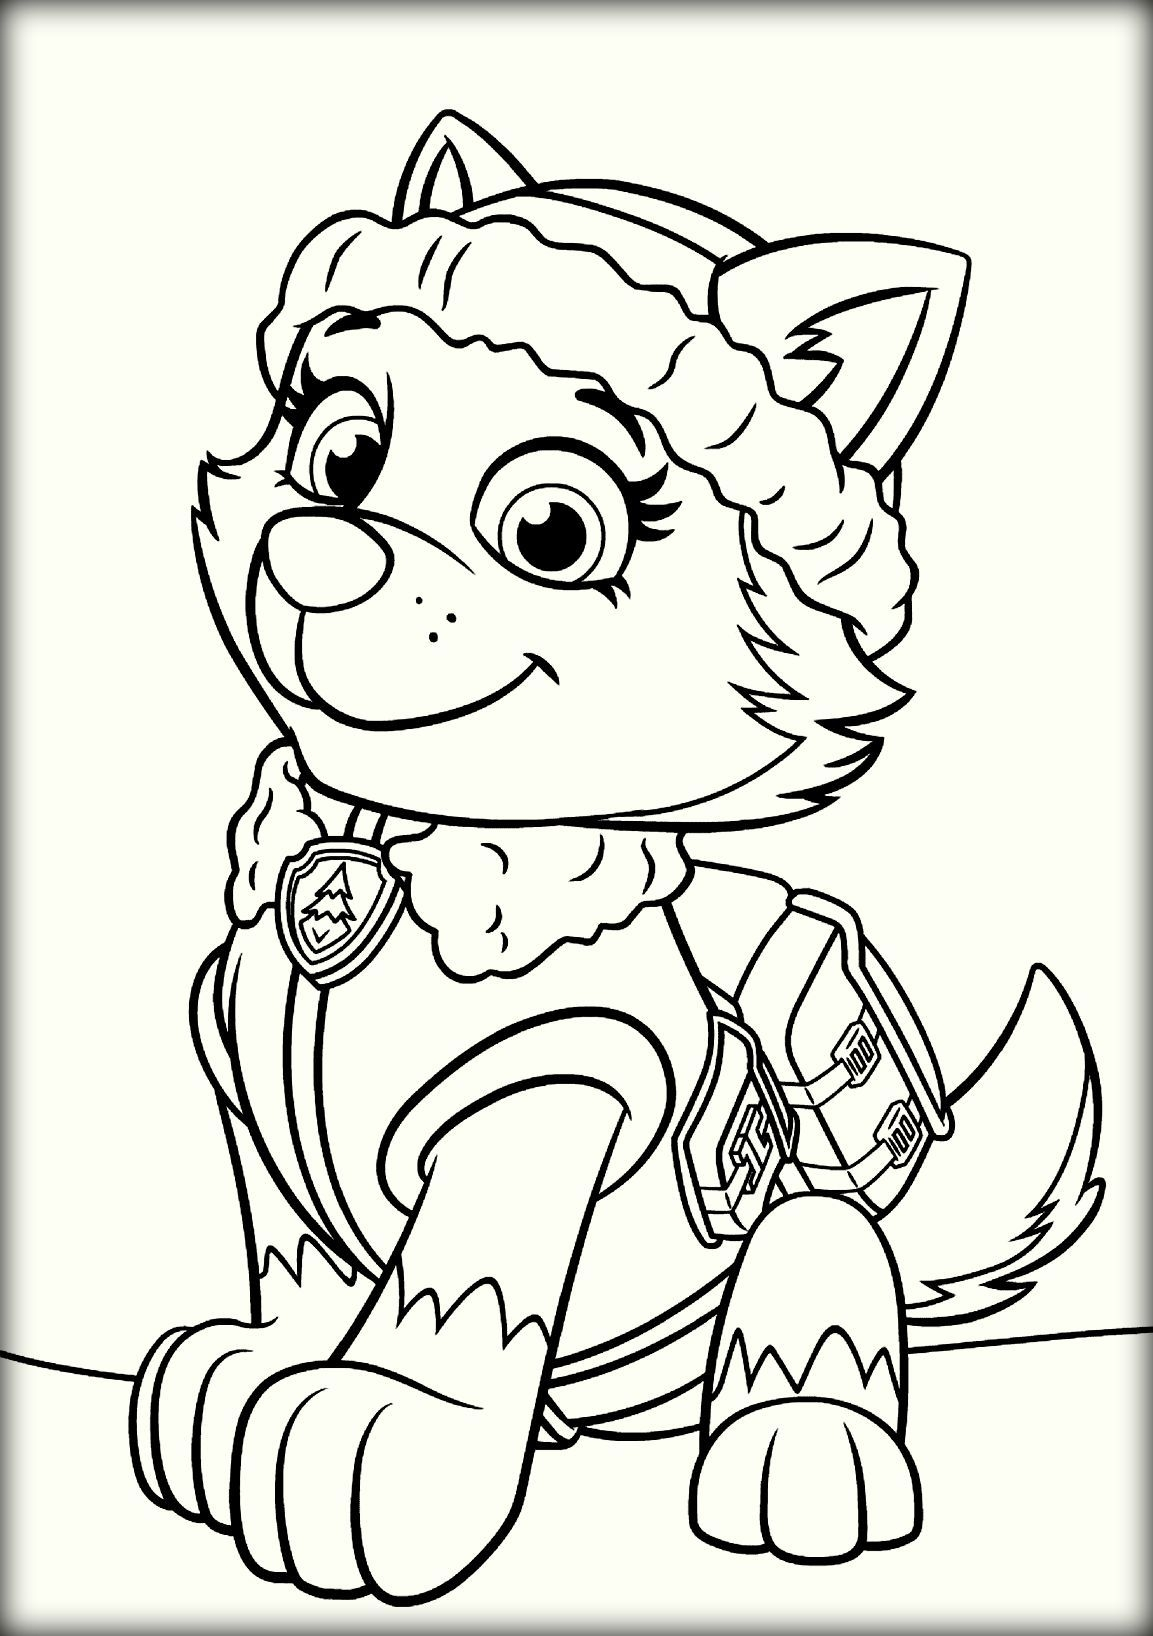 Cindy Lou Who Coloring Pages At Getcolorings